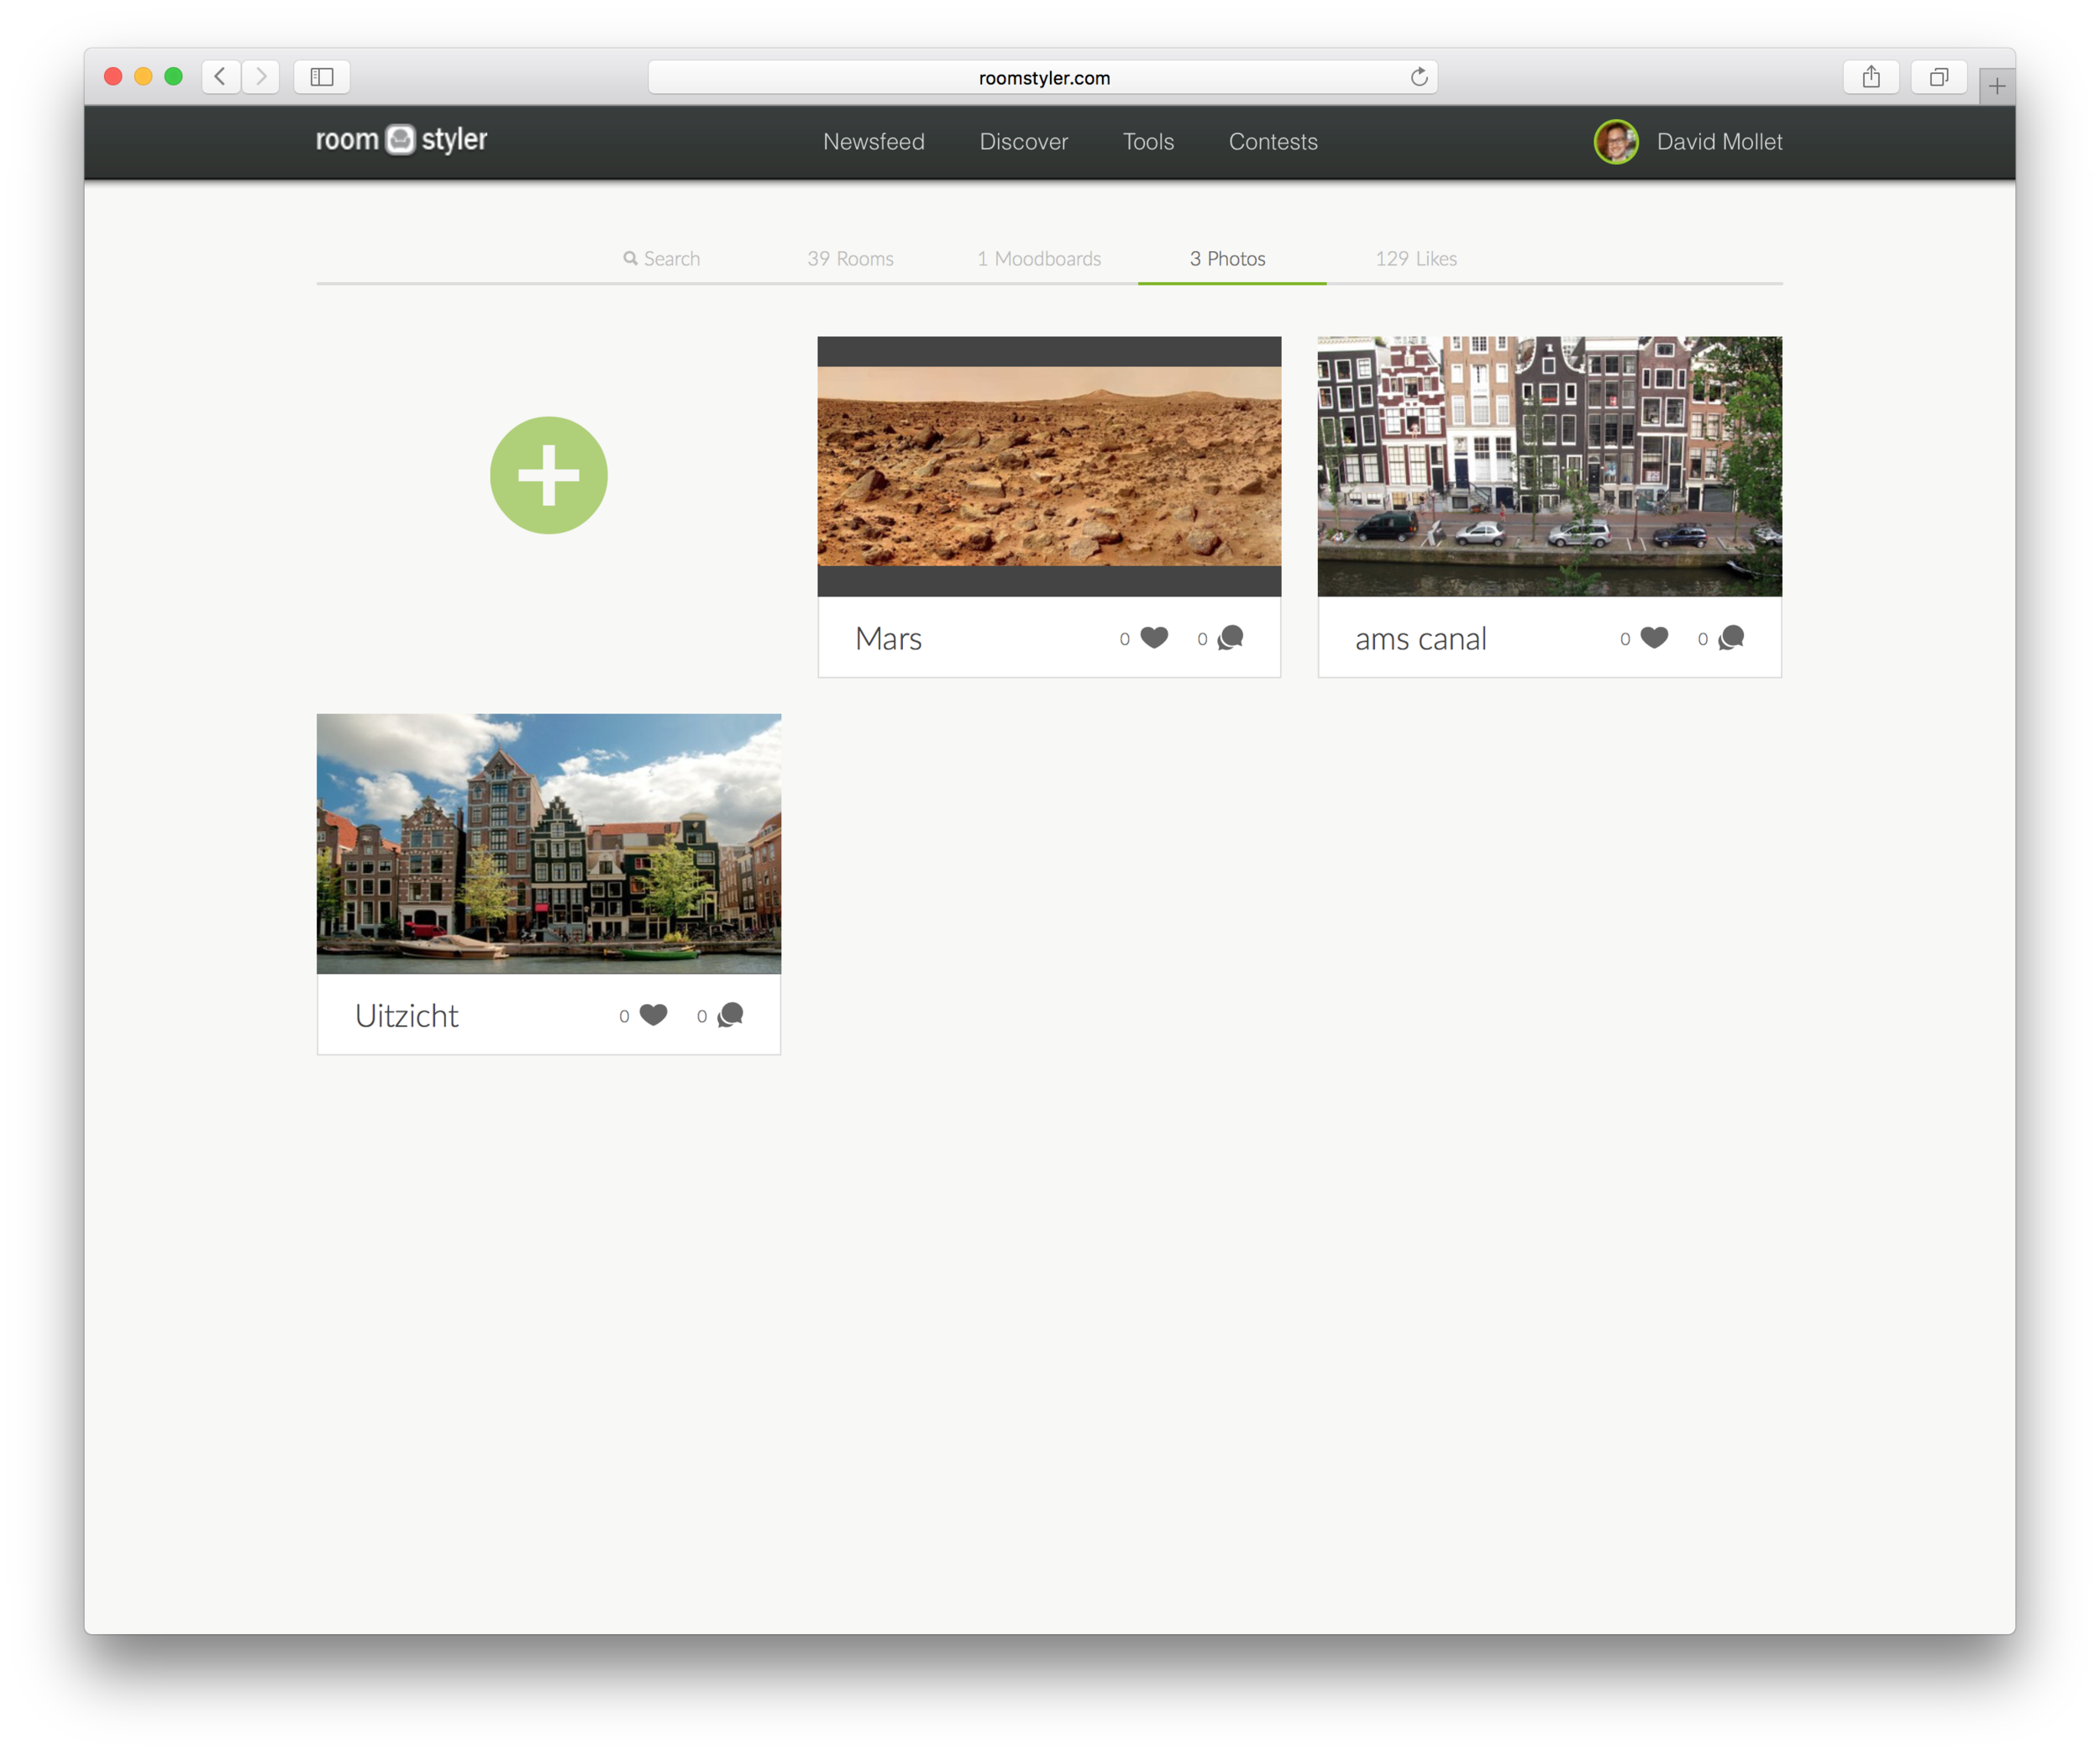 You can also see your uploaded photos